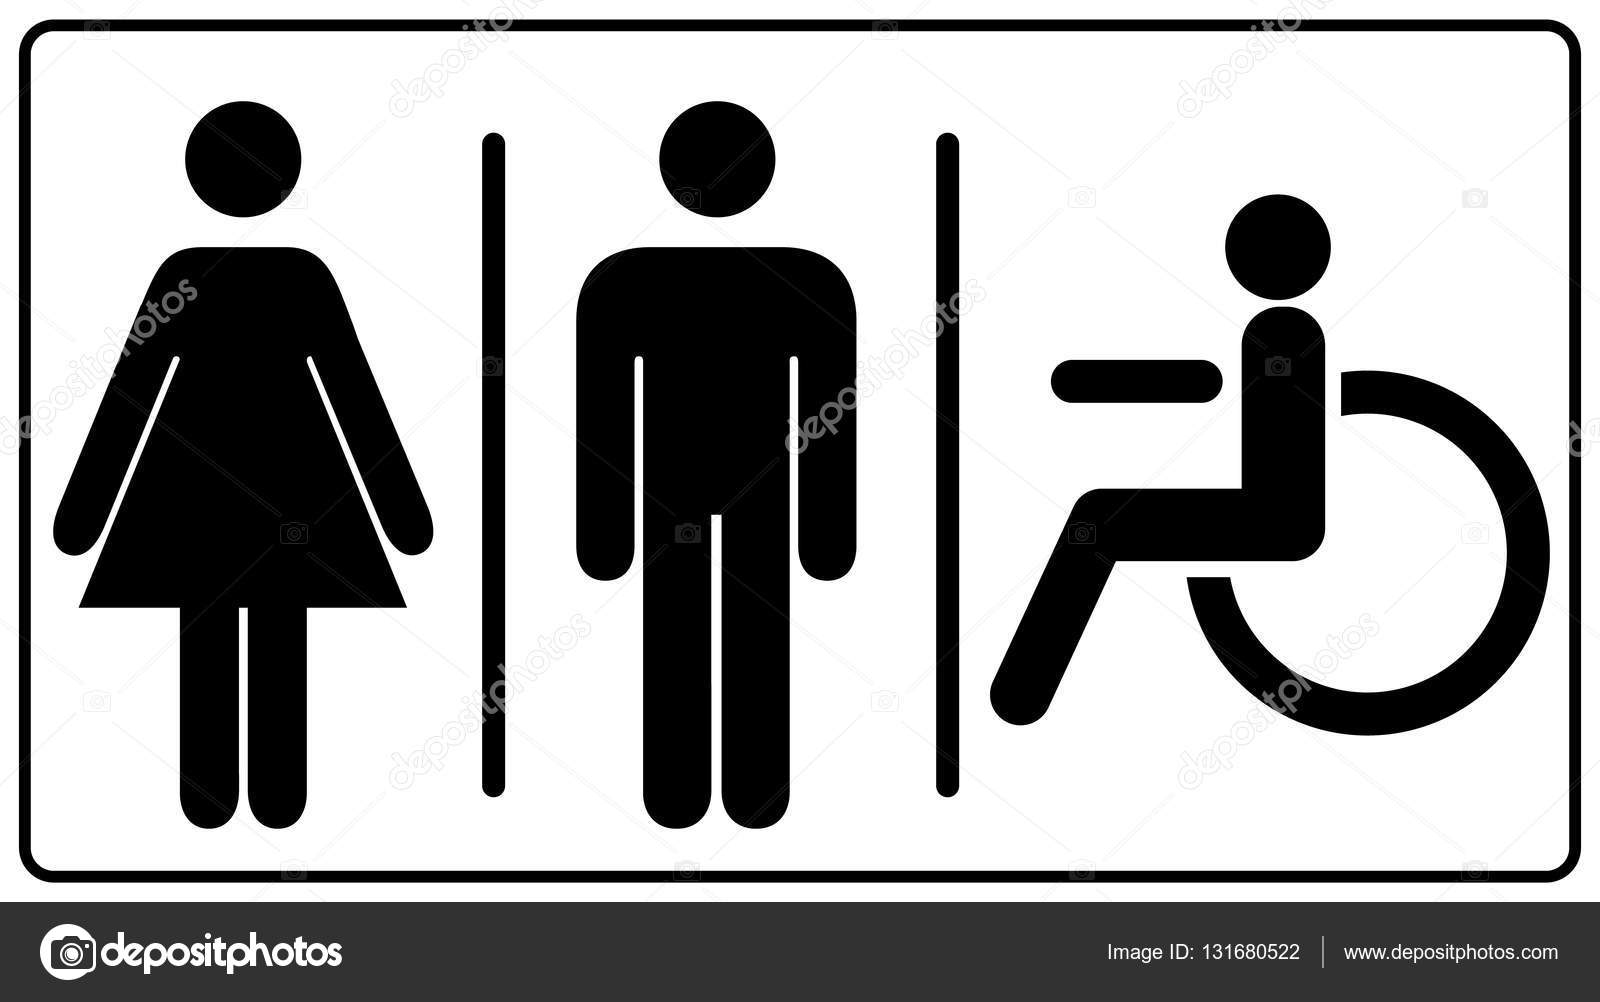 men s bathroom signs printable. Vector Illustration Of Mens And Womens Disabled Restroom Sign - Printable Restroom, Toilette Signs, Invalid Icon. Symbols For Public Places, Men S Bathroom Signs